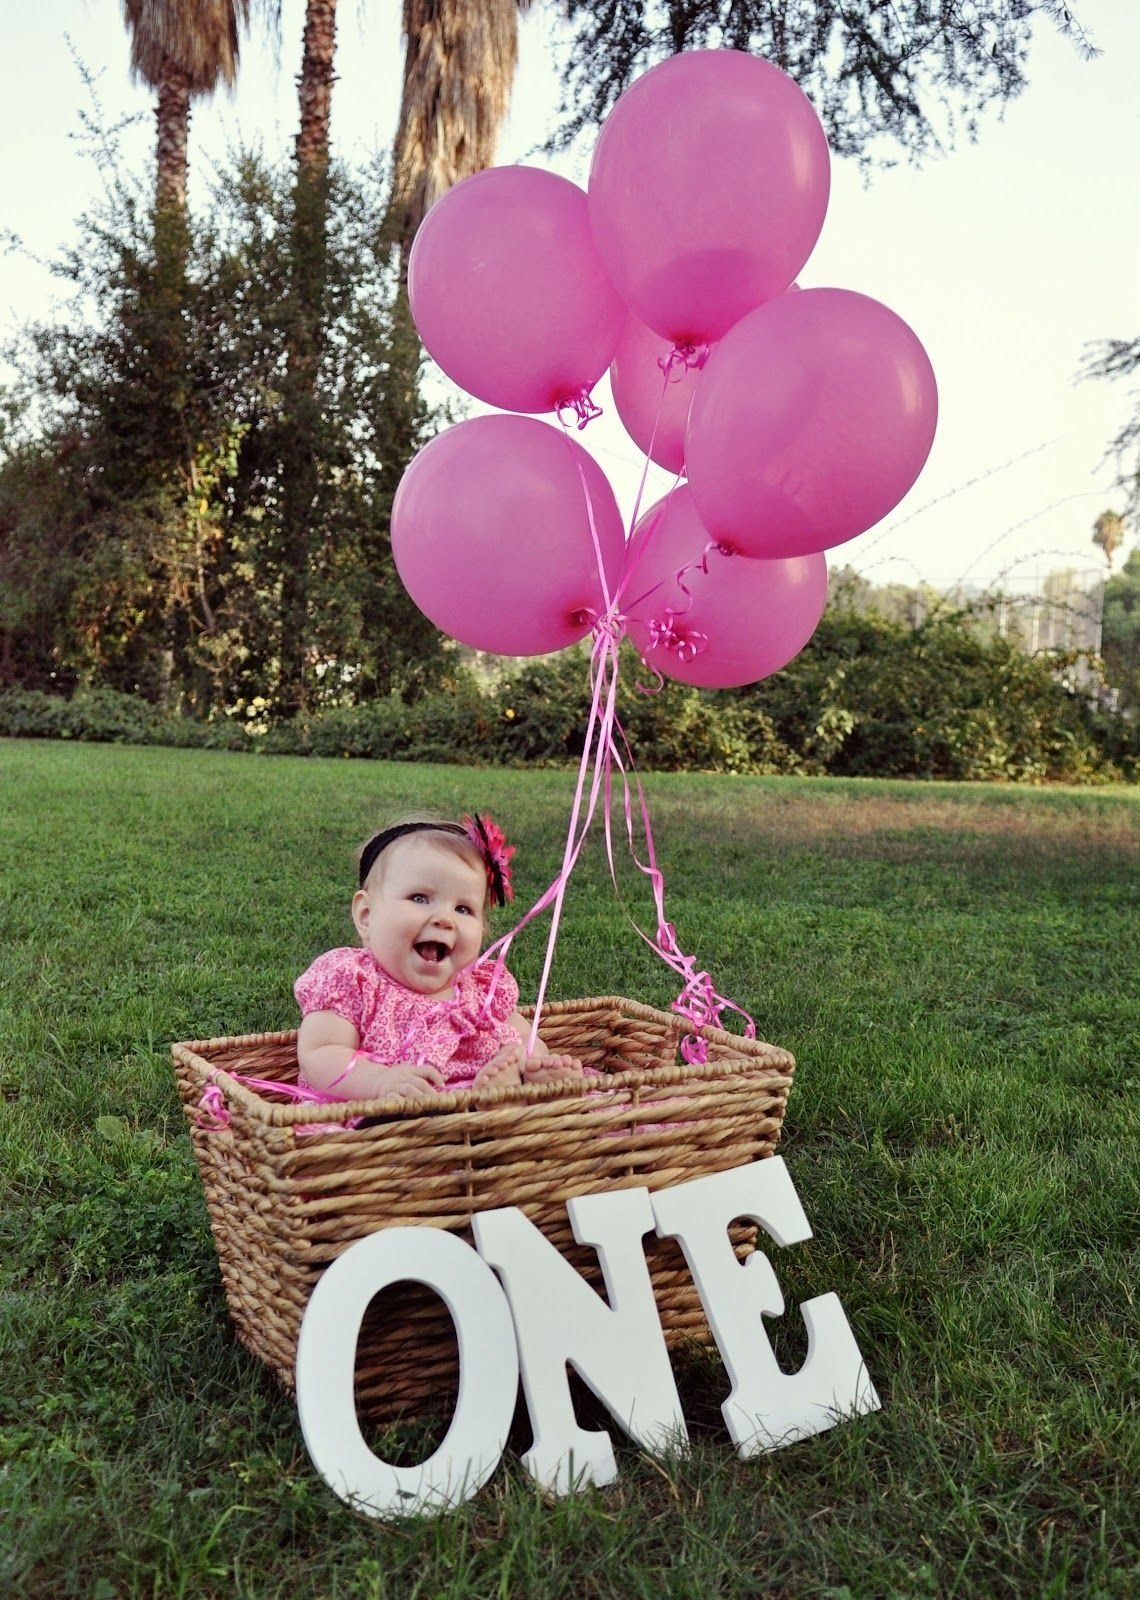 10 Most Recommended Ideas For 1 Year Old Birthday one year old photo shoot although there will probably be snow on 3 2020